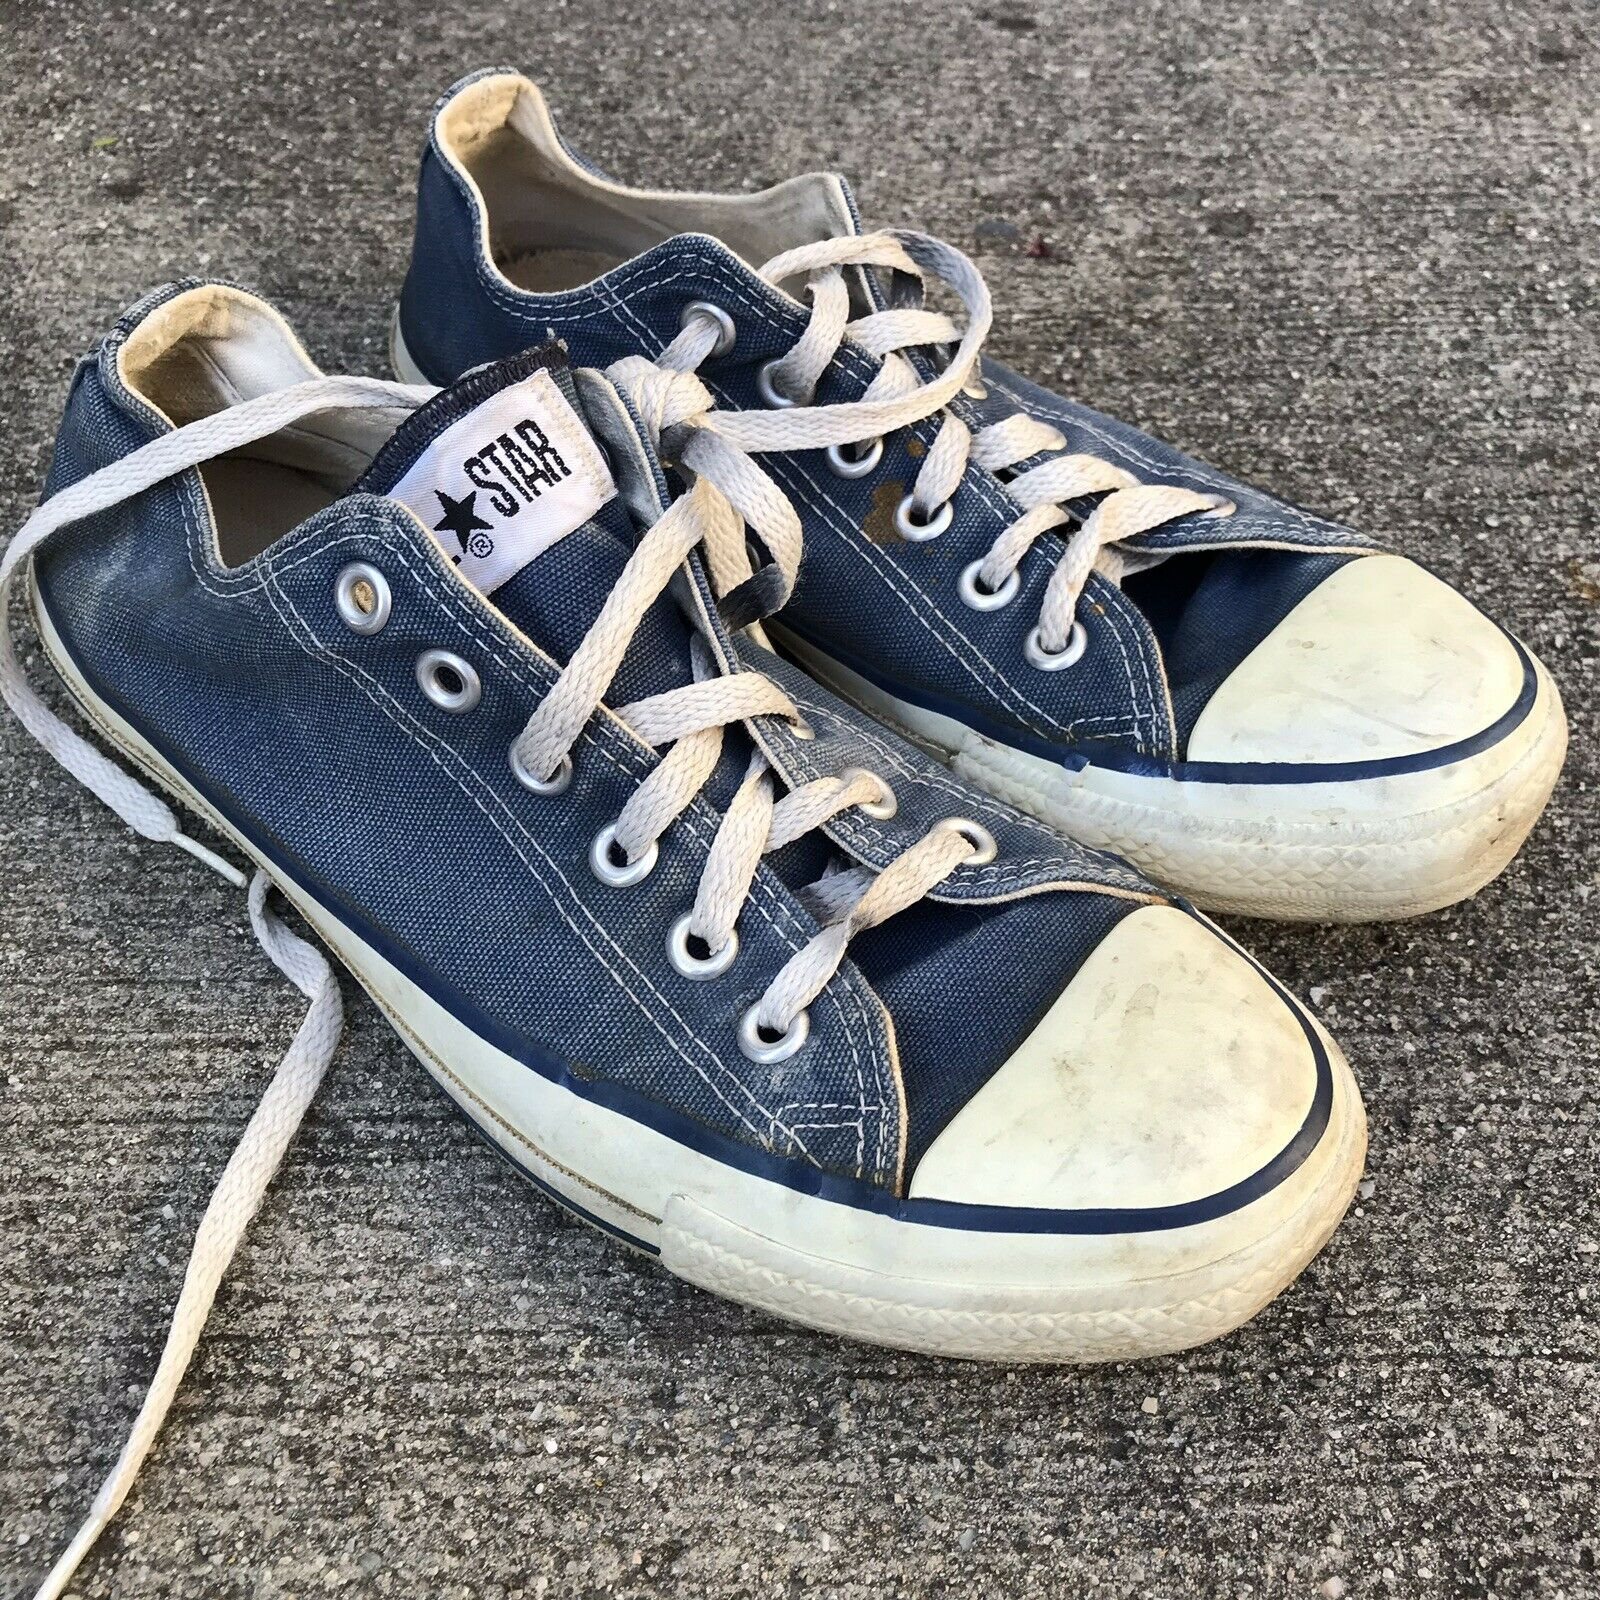 Converse All Star Vintage Made In USA shoes 6.5 M 8.5 Women's 8 1 2 bluee